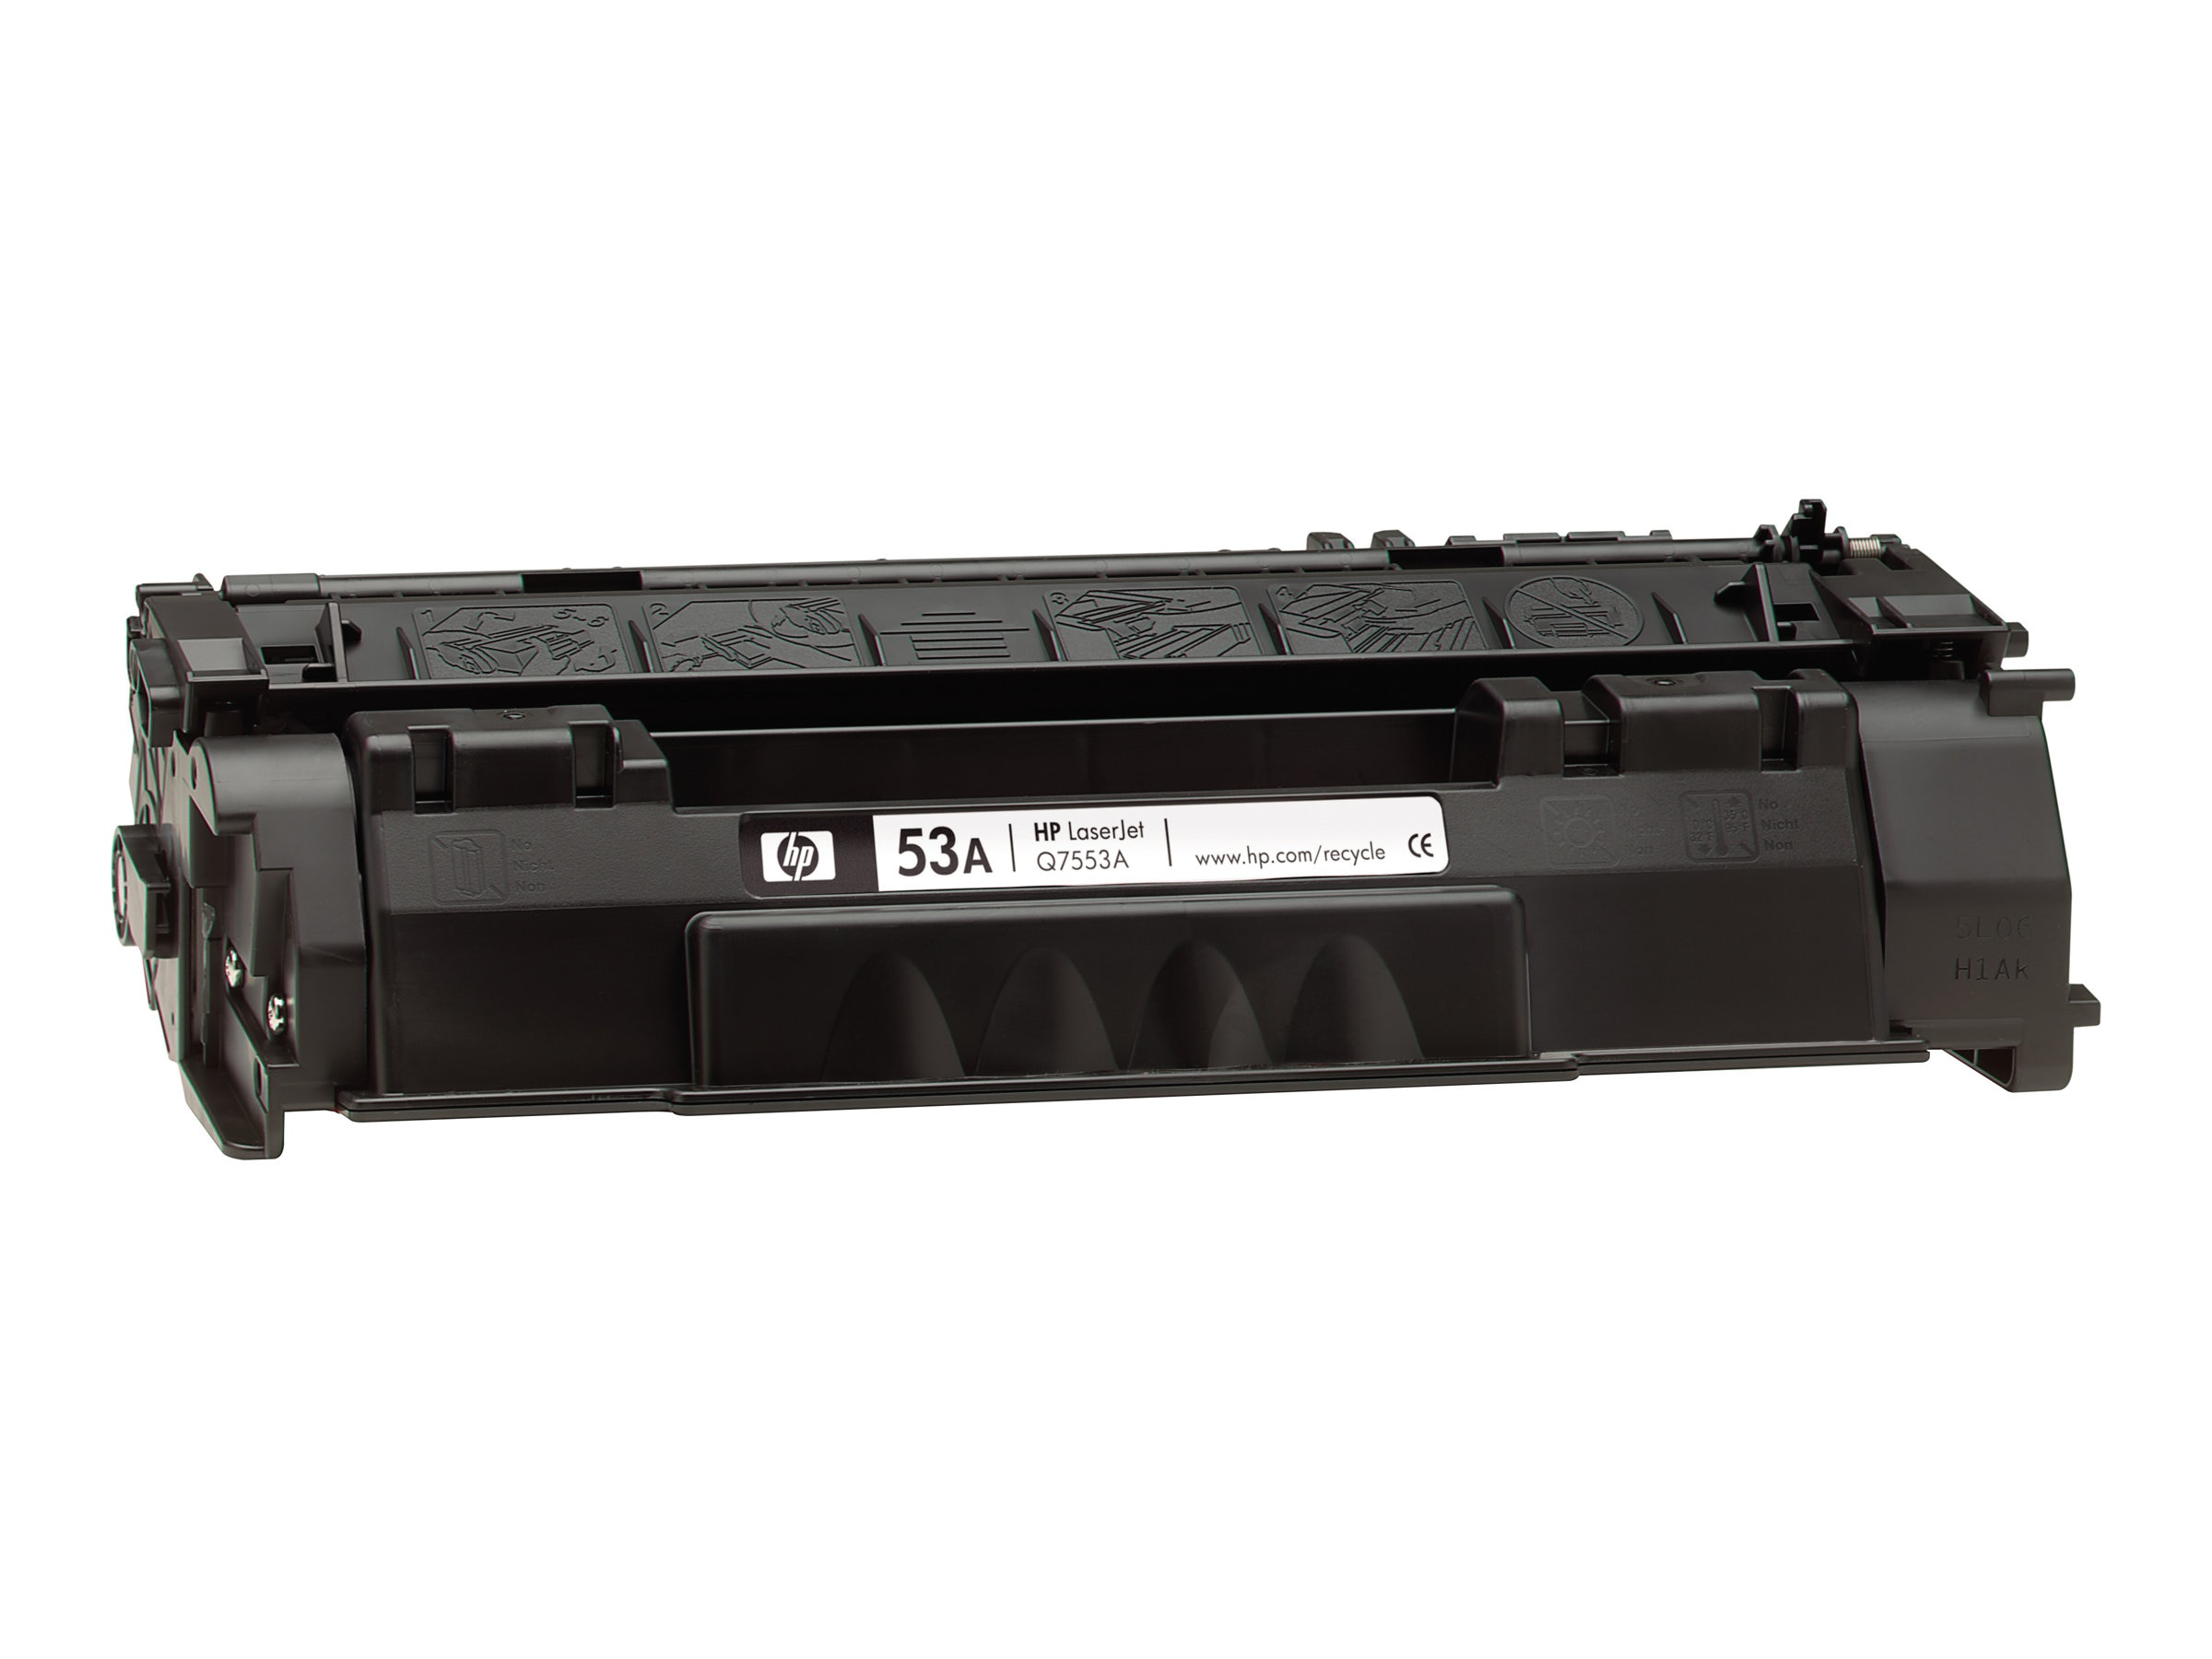 HP 53A (Q7553A) Black Original LaserJet Toner Cartridge for HP LaserJet P2015 & M2727nf (TAA Compliant)